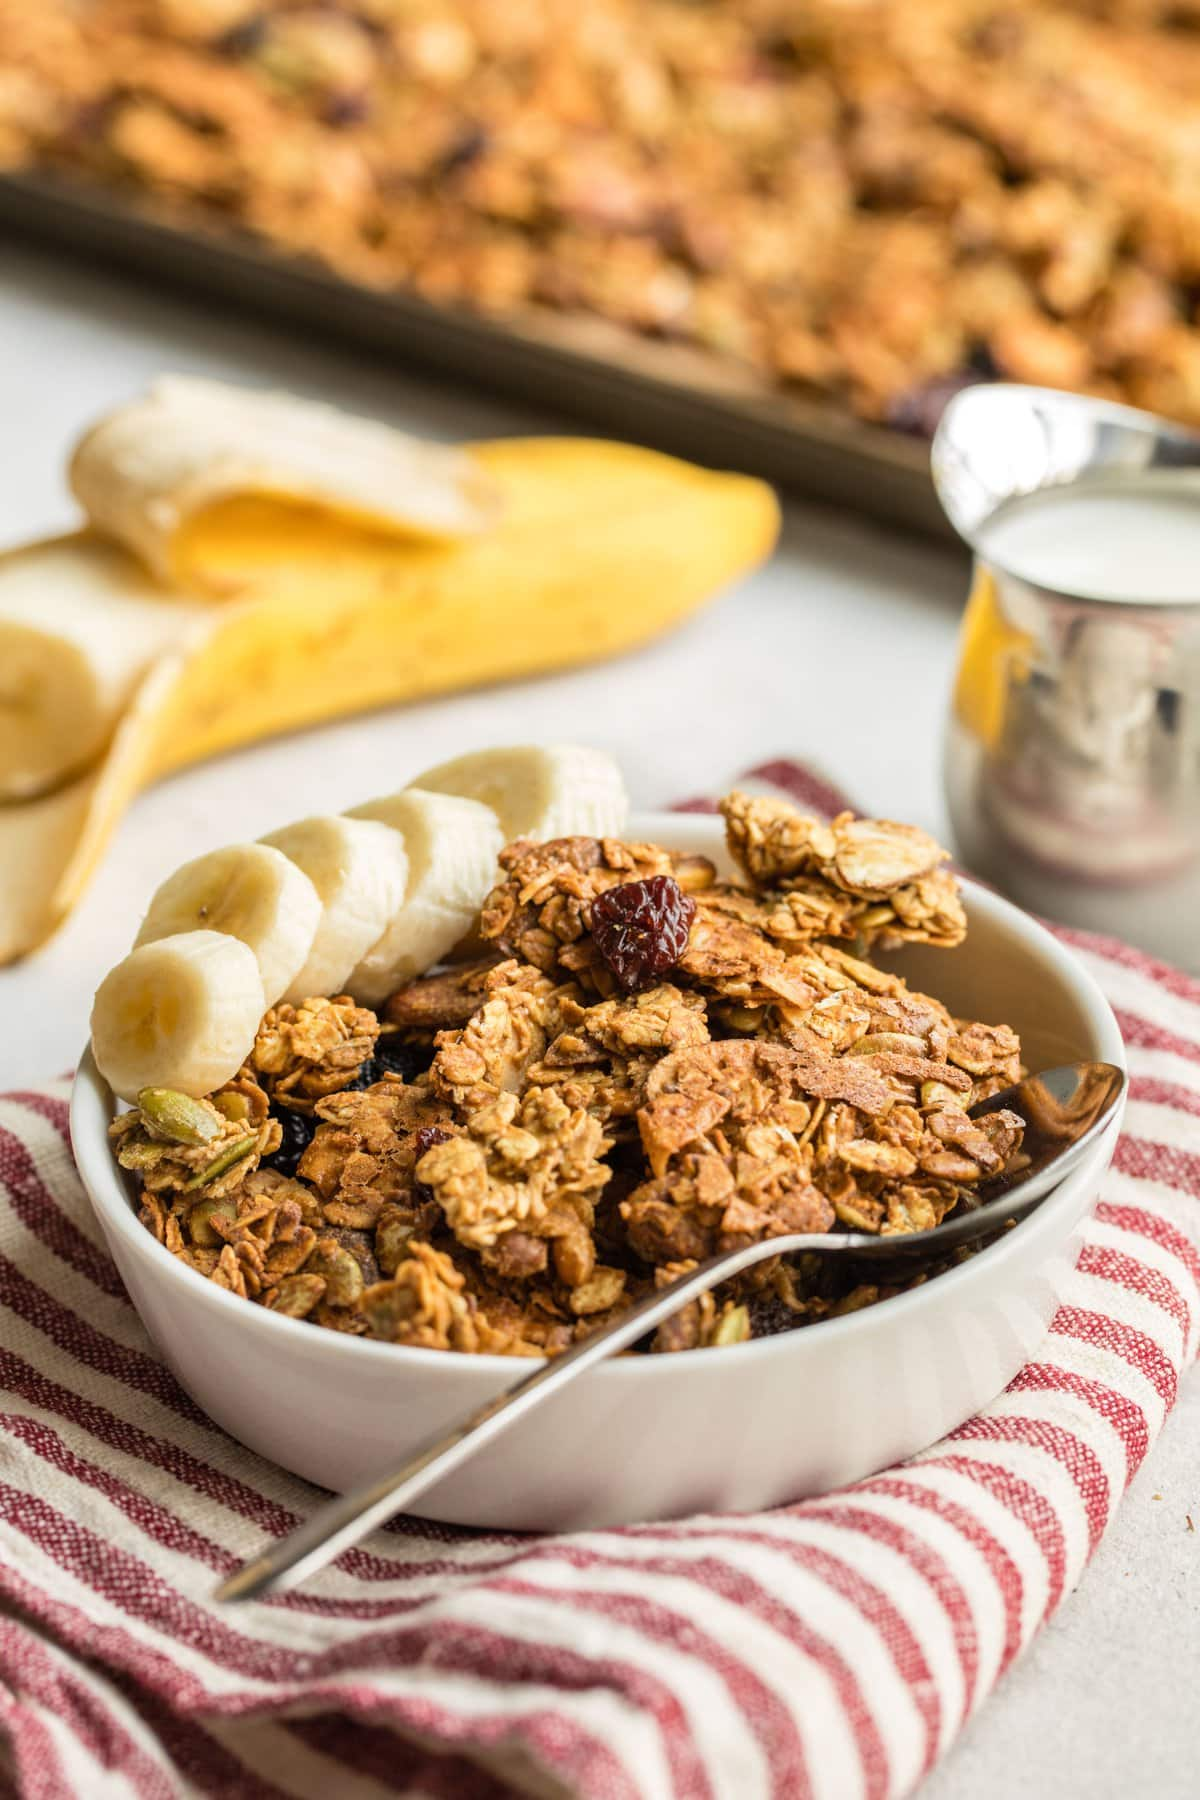 angled shot of white bowl filled with granola with sliced banana on the side on red striped napkin